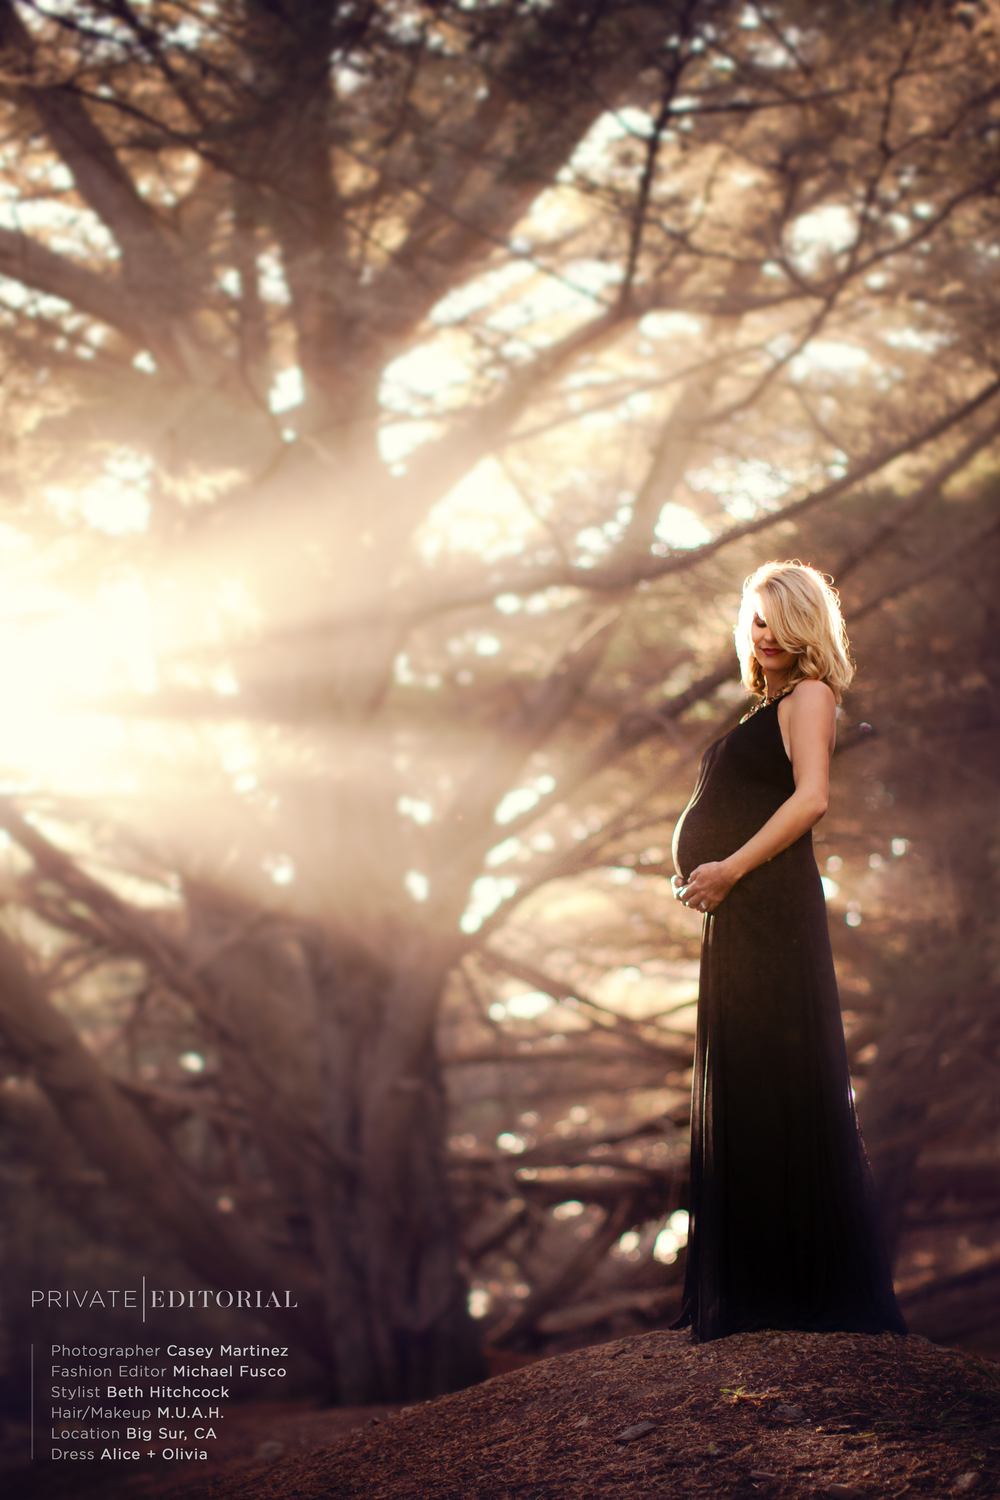 big-sur-maternity-photography-styled-couple-private-editorial-4.jpg